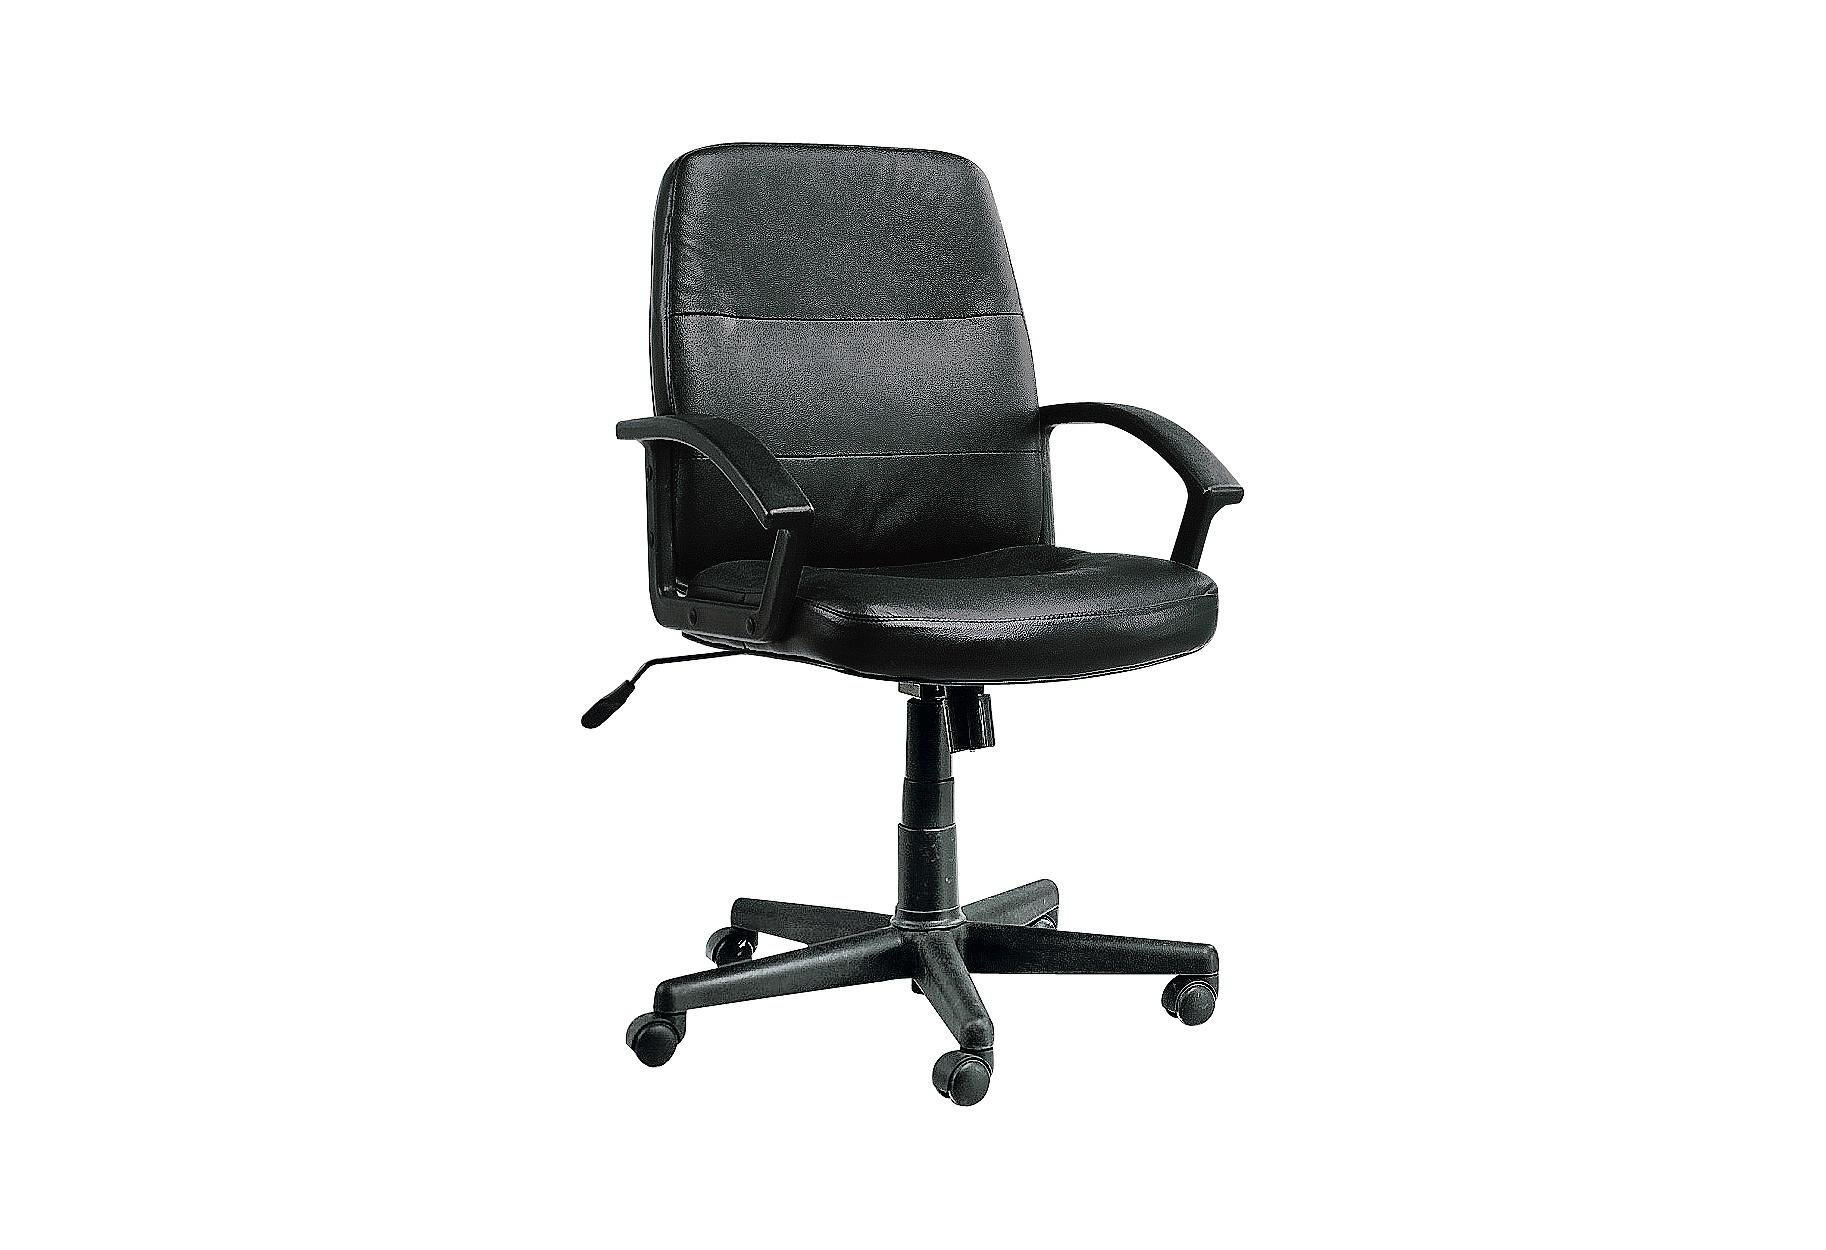 HOME Brixham Height Adjustable Managers fice Chair Black